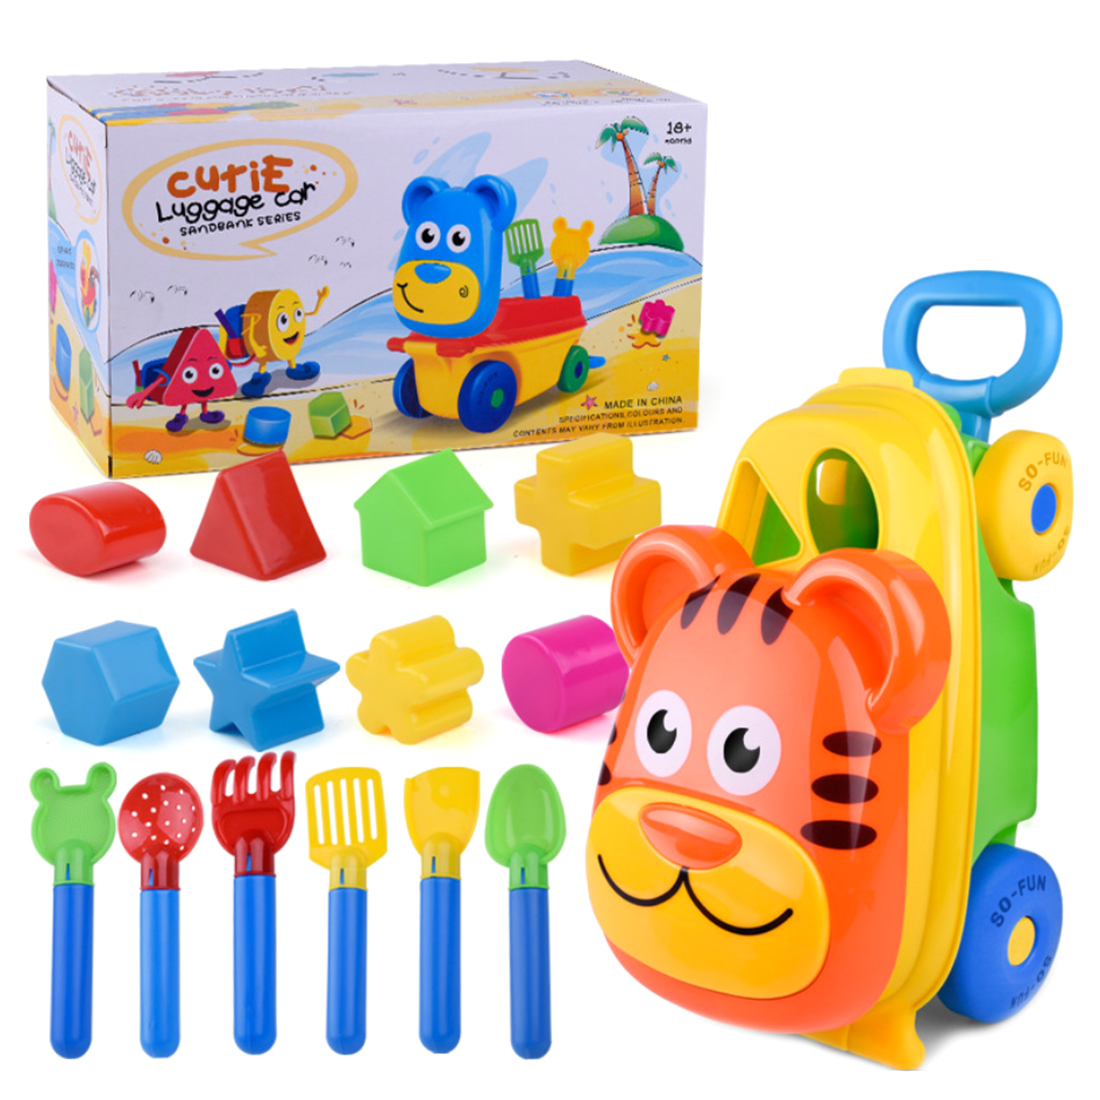 15Pcs Children Outdoor Sand Toys Beach Toy Luggage Cart Sand Play Set Digging Shovel Tools Bath Water Playing Toy - Random Color